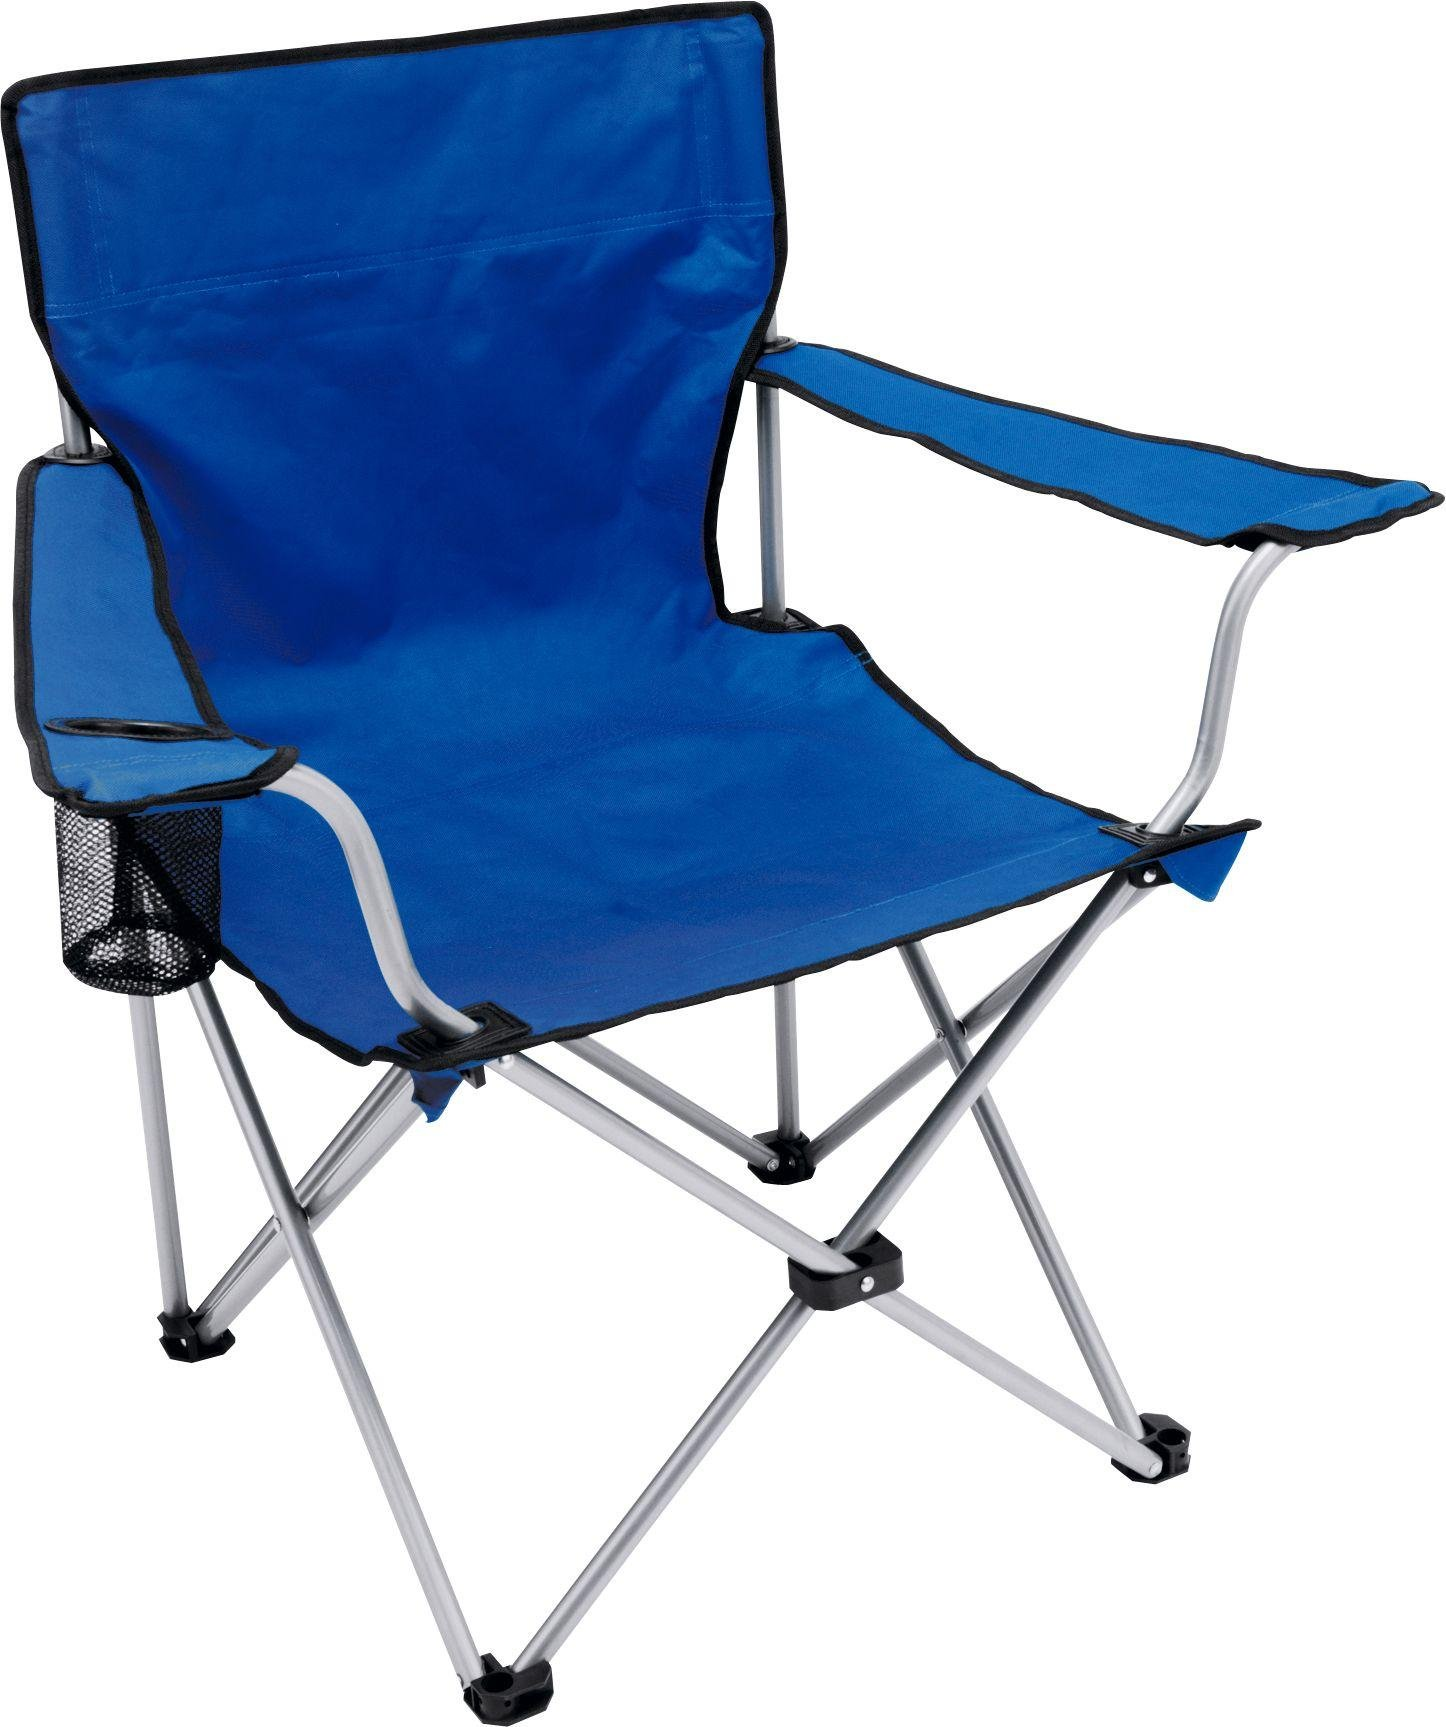 Style Of Steel Folding Camping Chair927 8321 For Your House - Review folding camping chairs in a bag Style